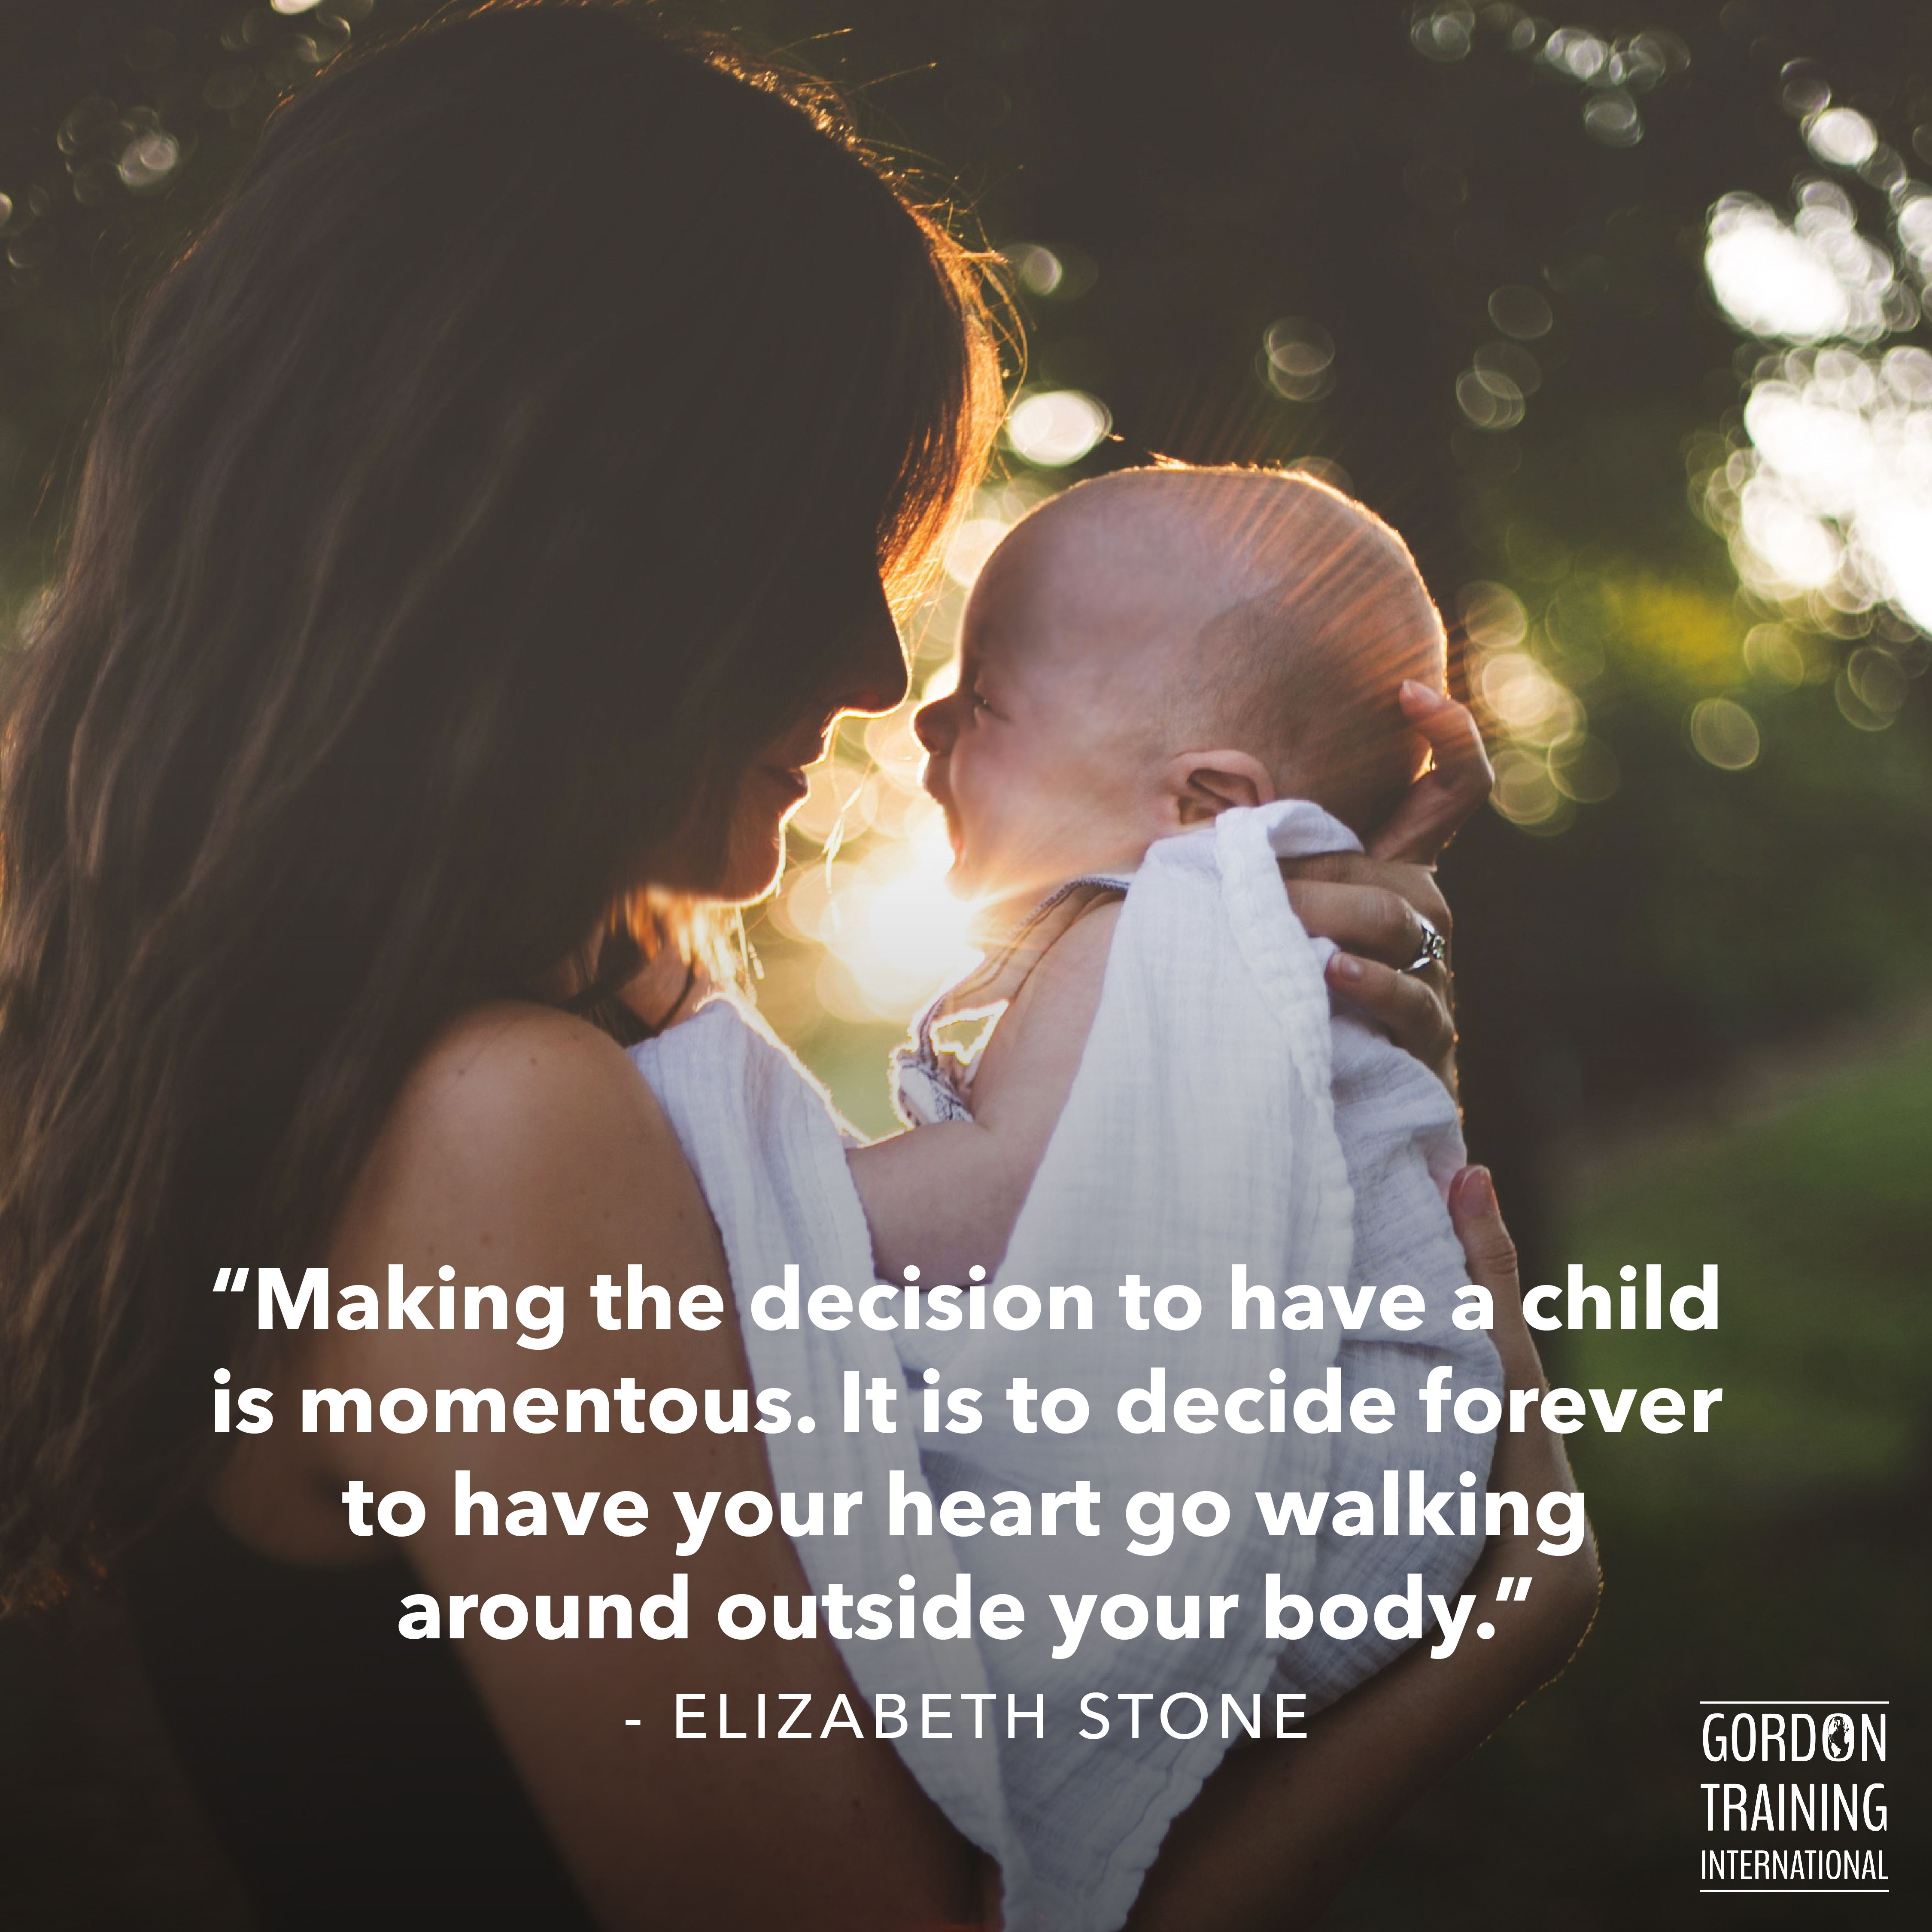 Parenting Gordonmodel Parentingquotes With Images